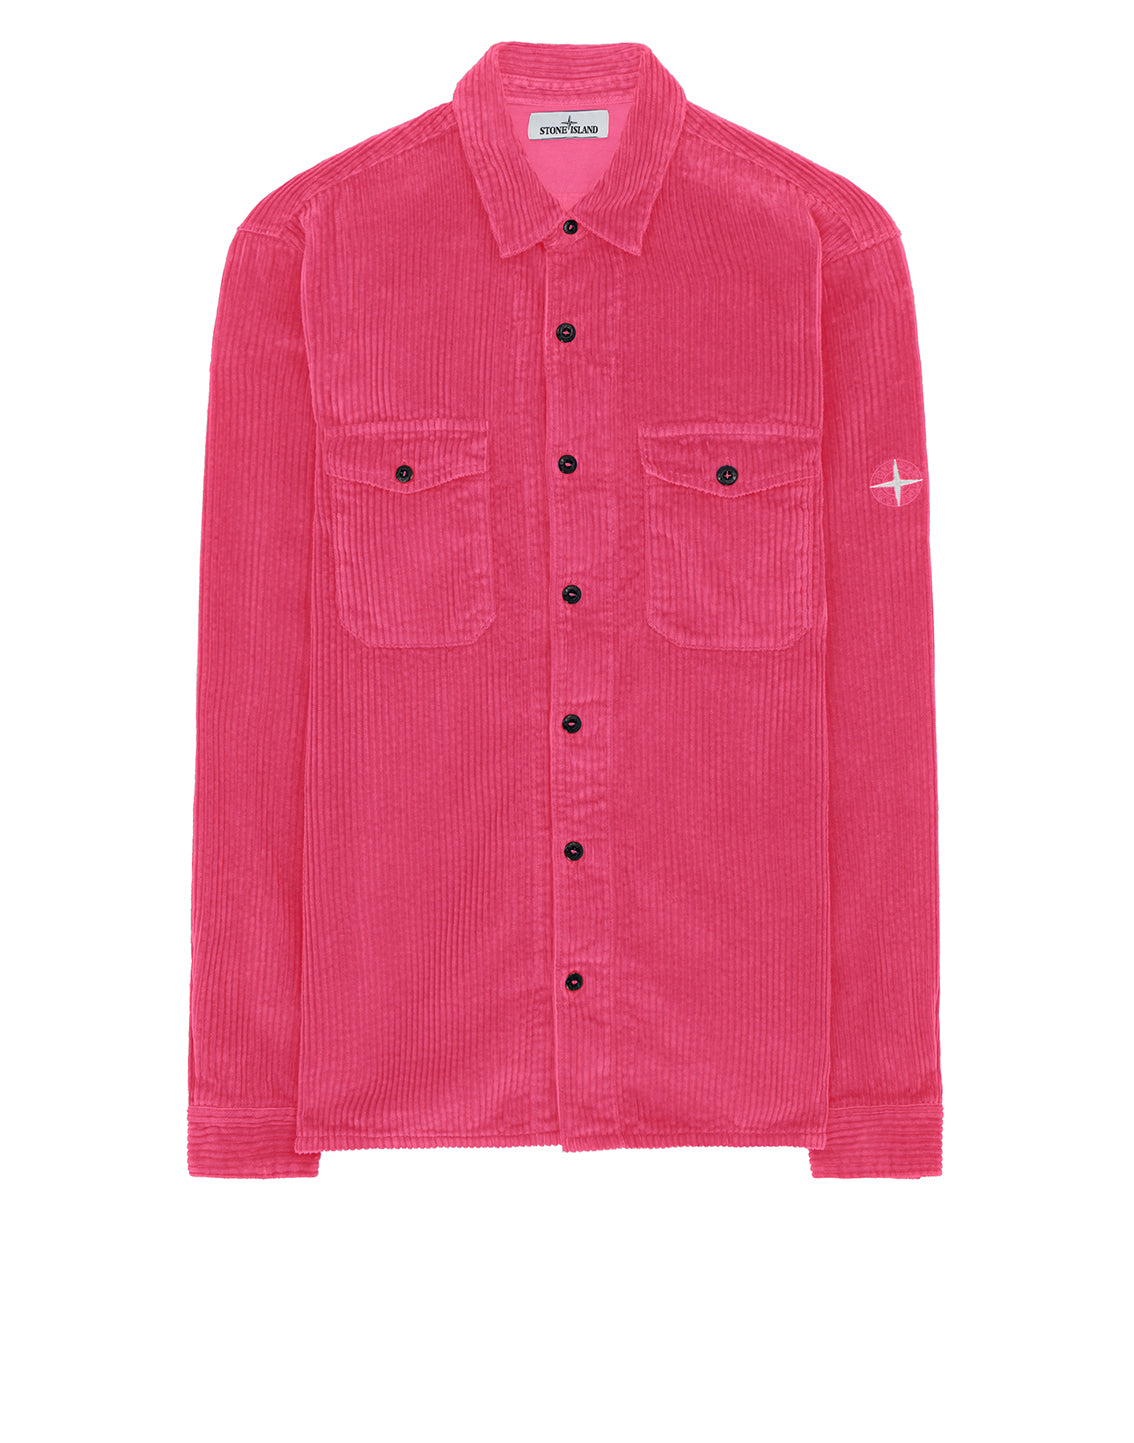 12111 Long Sleeve Shirt in Pink